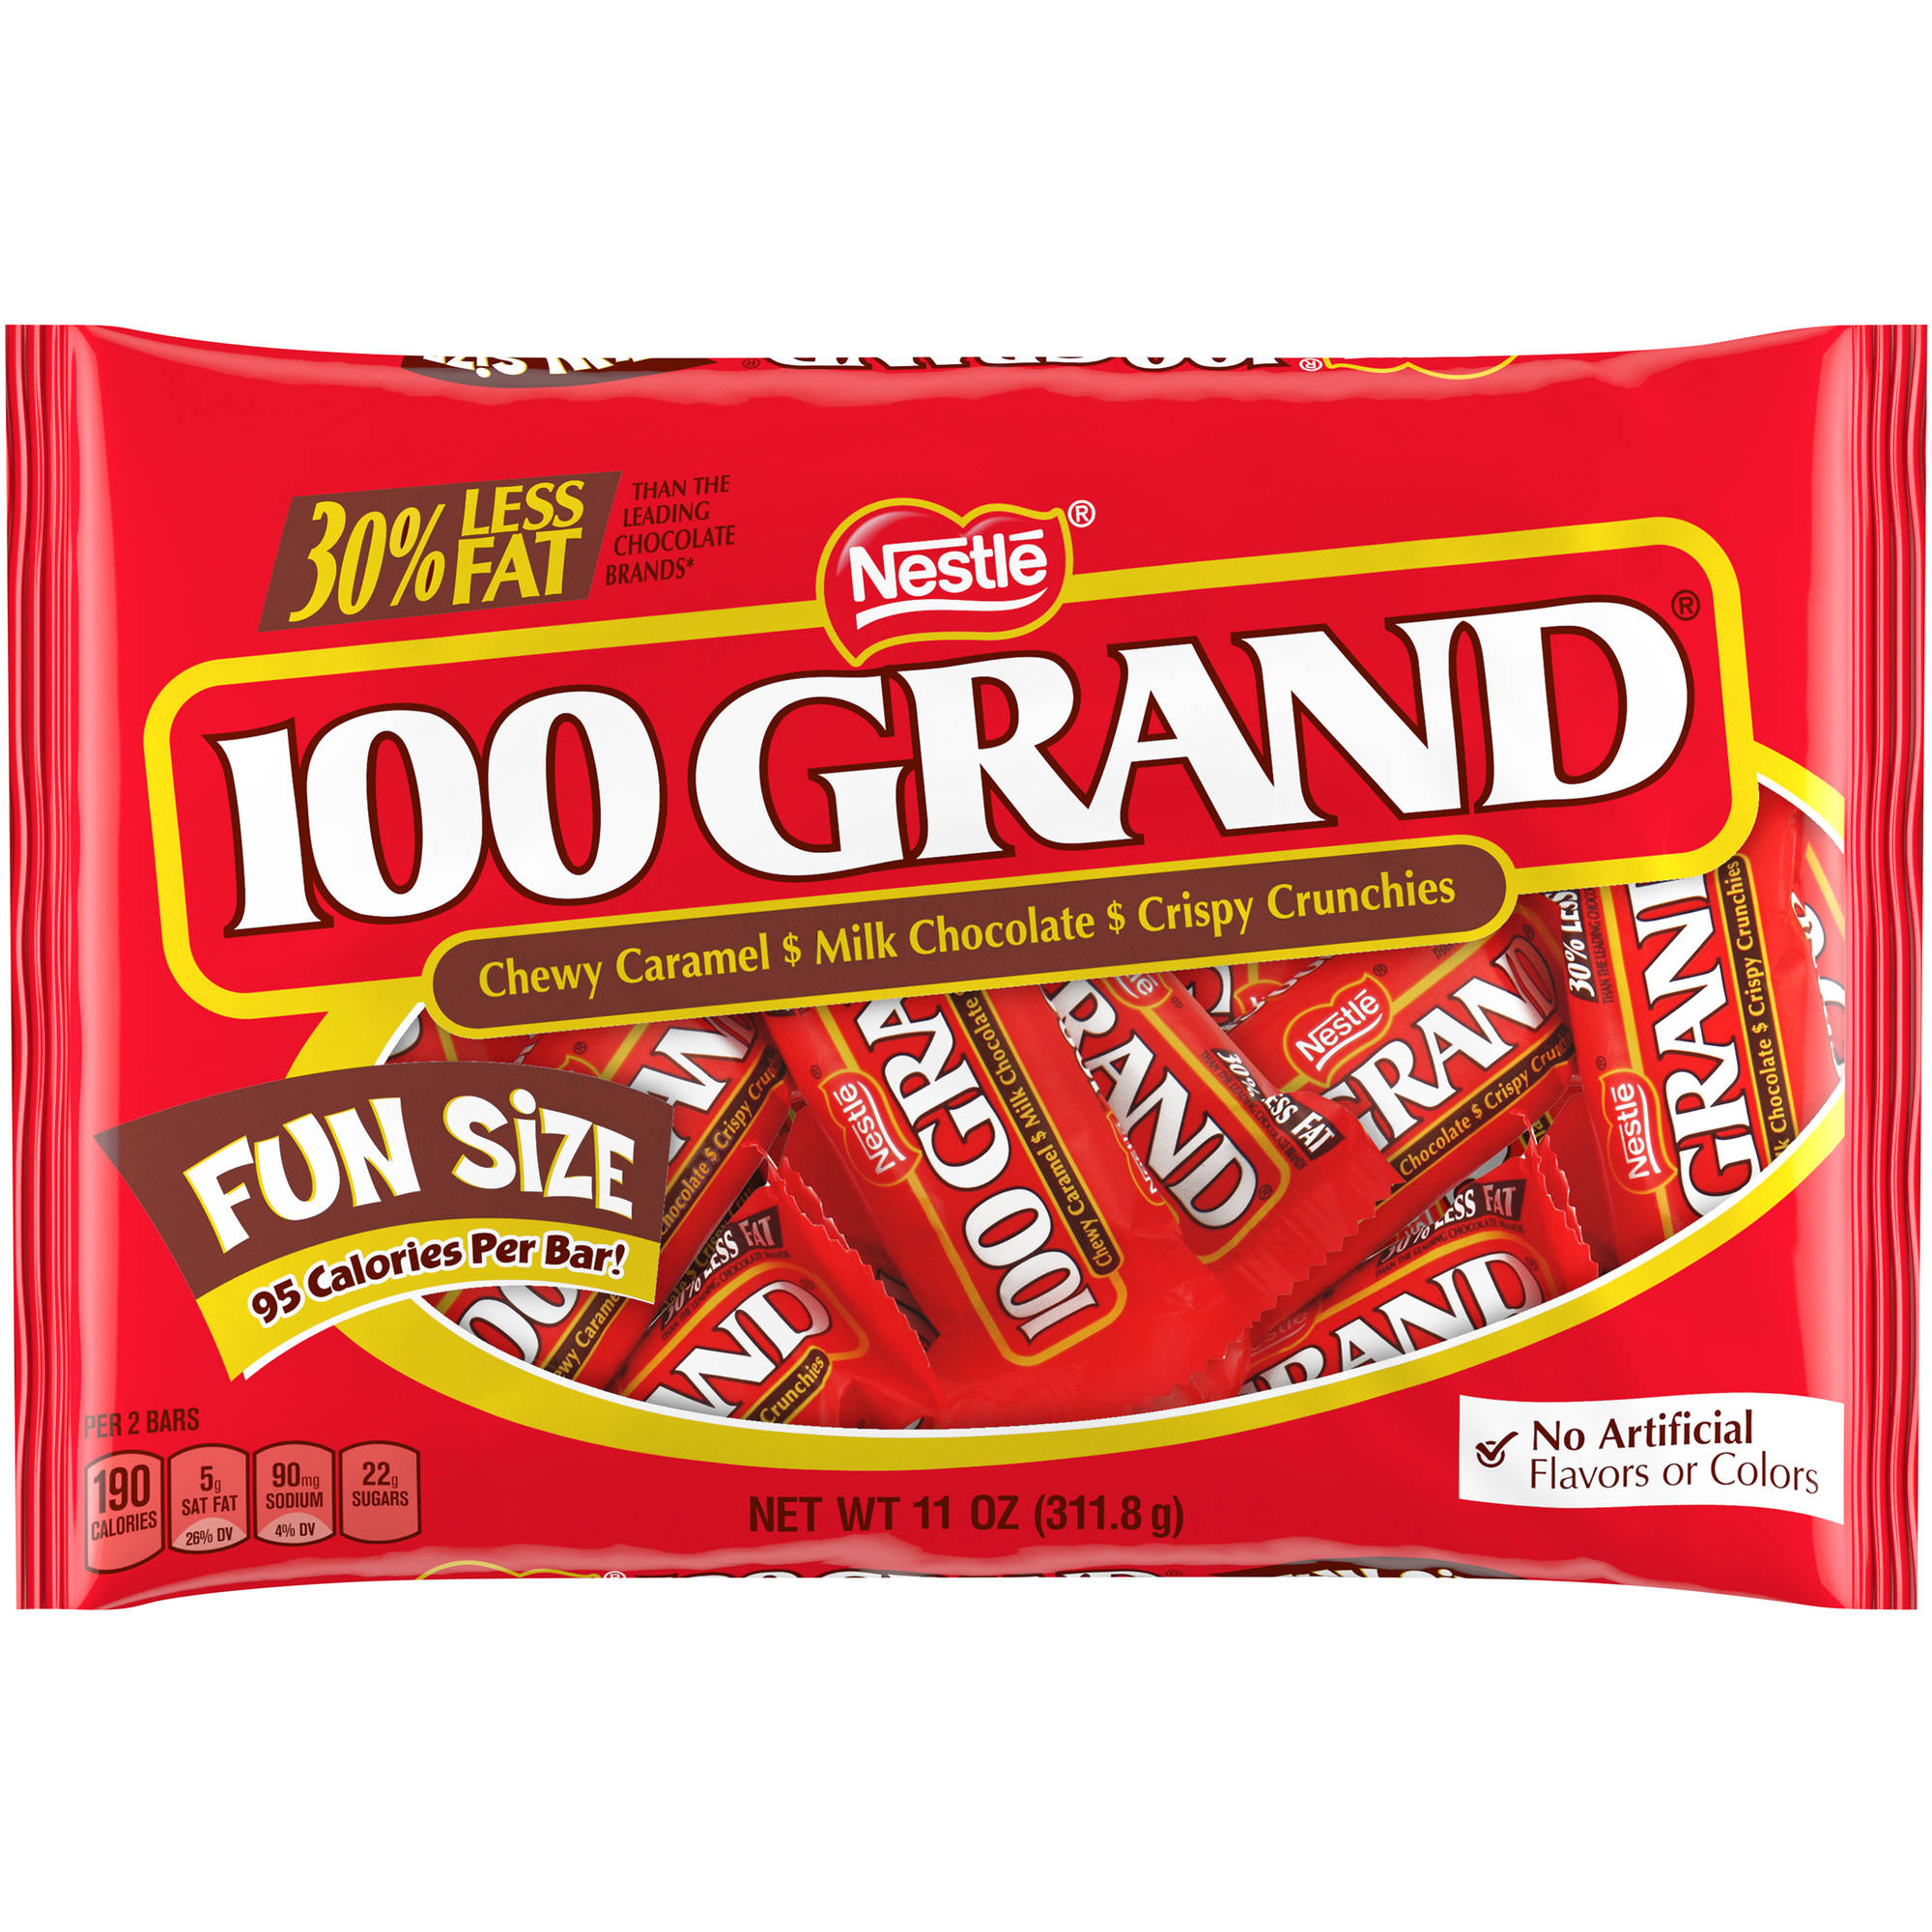 100 Grand Fun Size Halloween Candy Bars, 11 oz